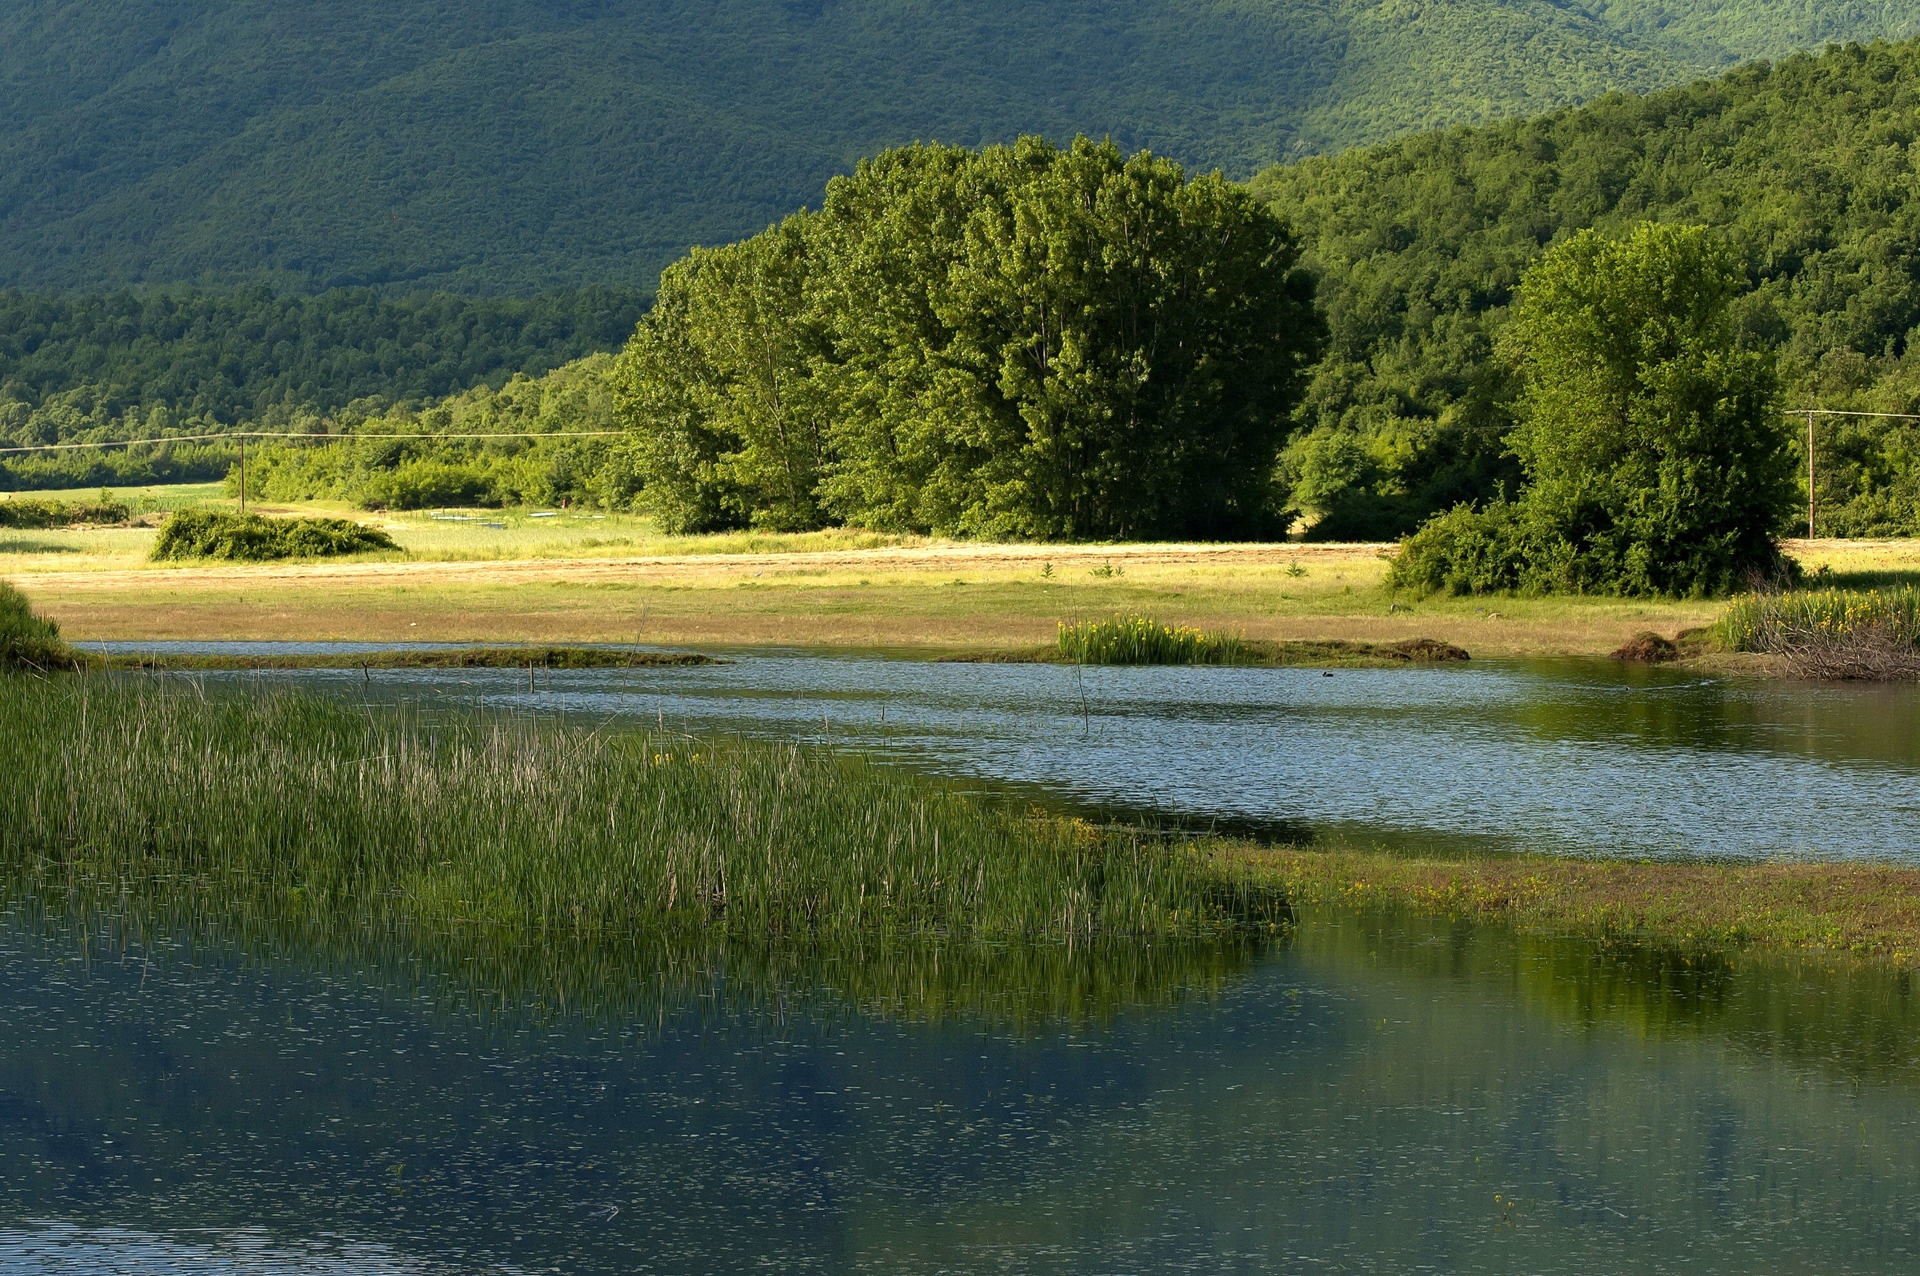 Kerkini lake and mountain eco-area at nord Greece by Struma river